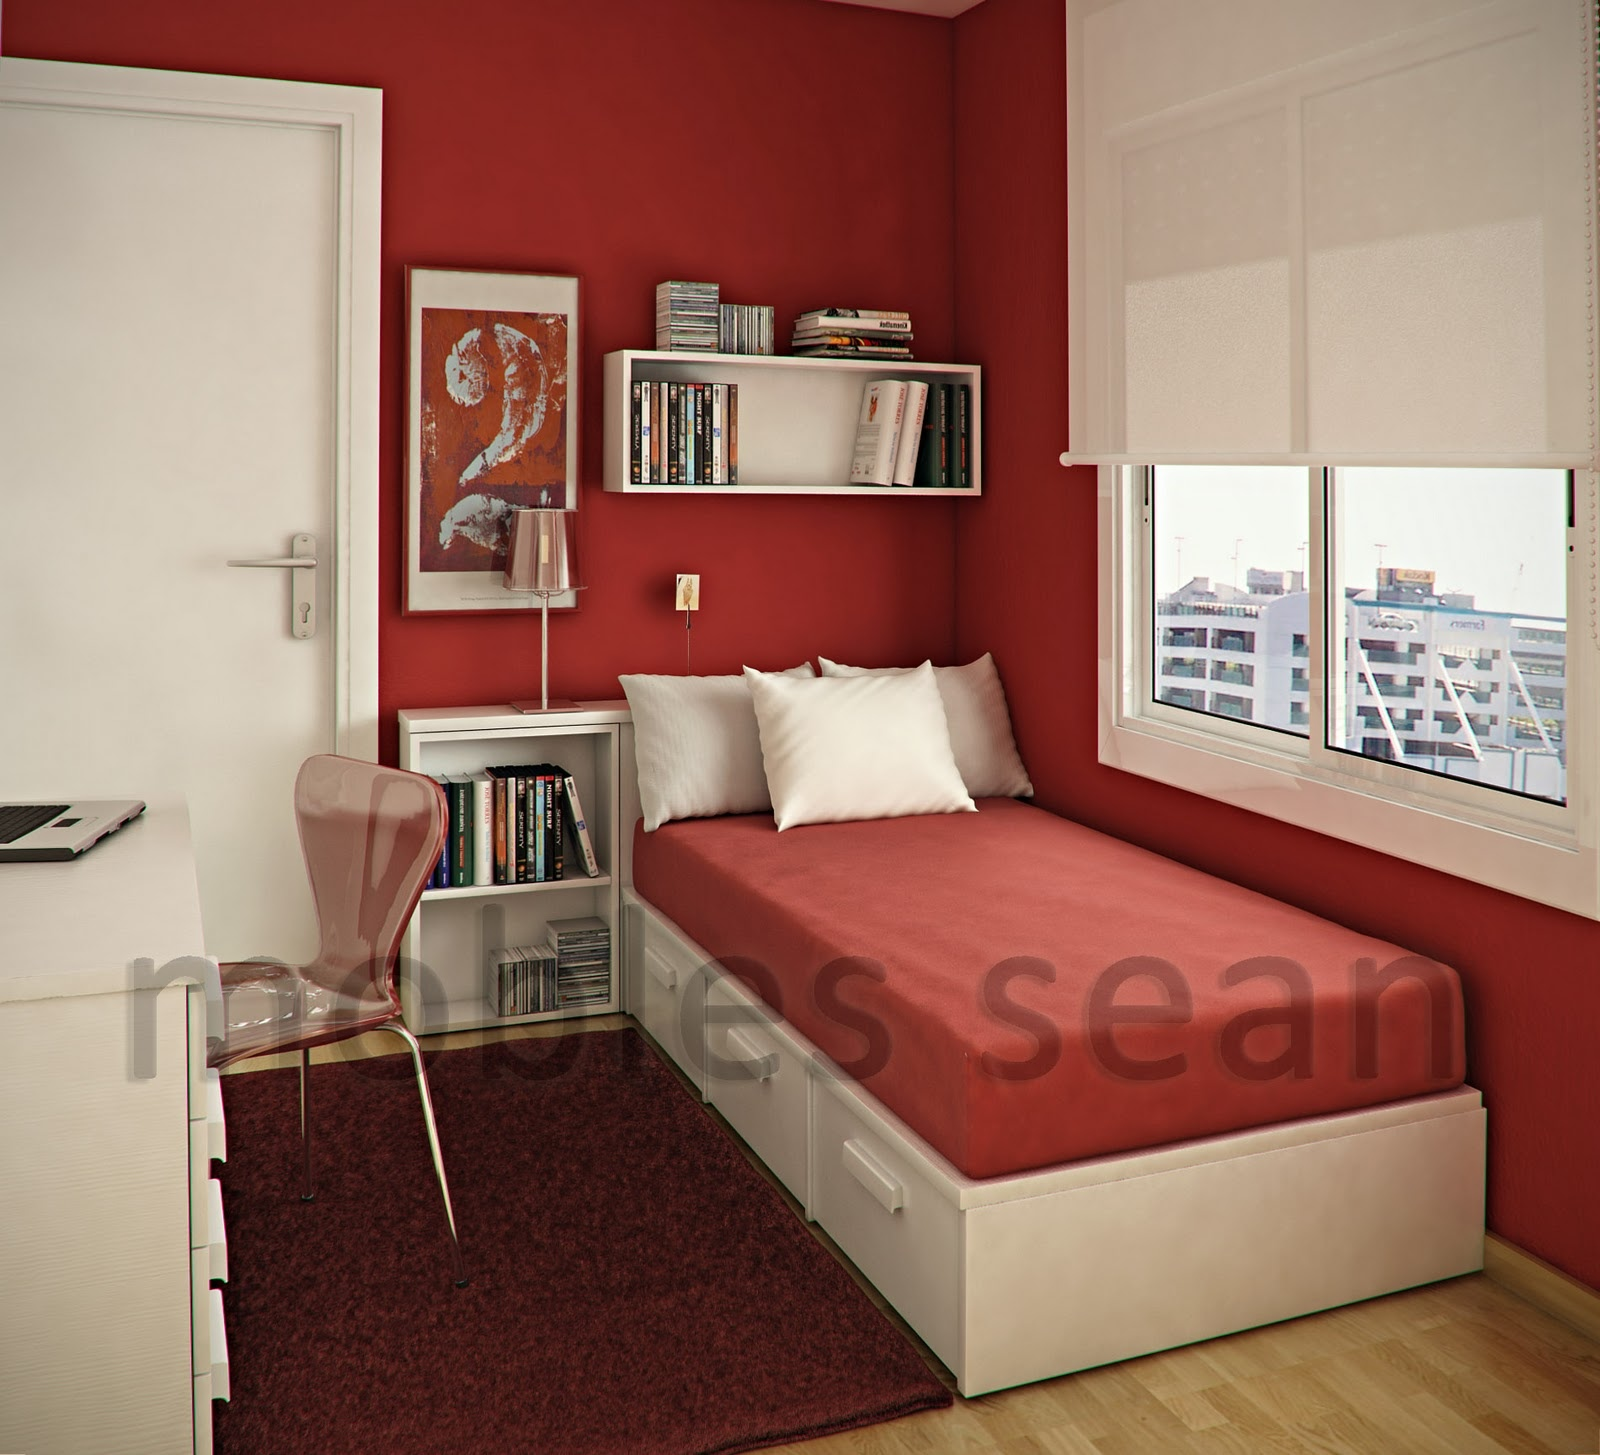 Space saving designs for small kids rooms for Red room design ideas